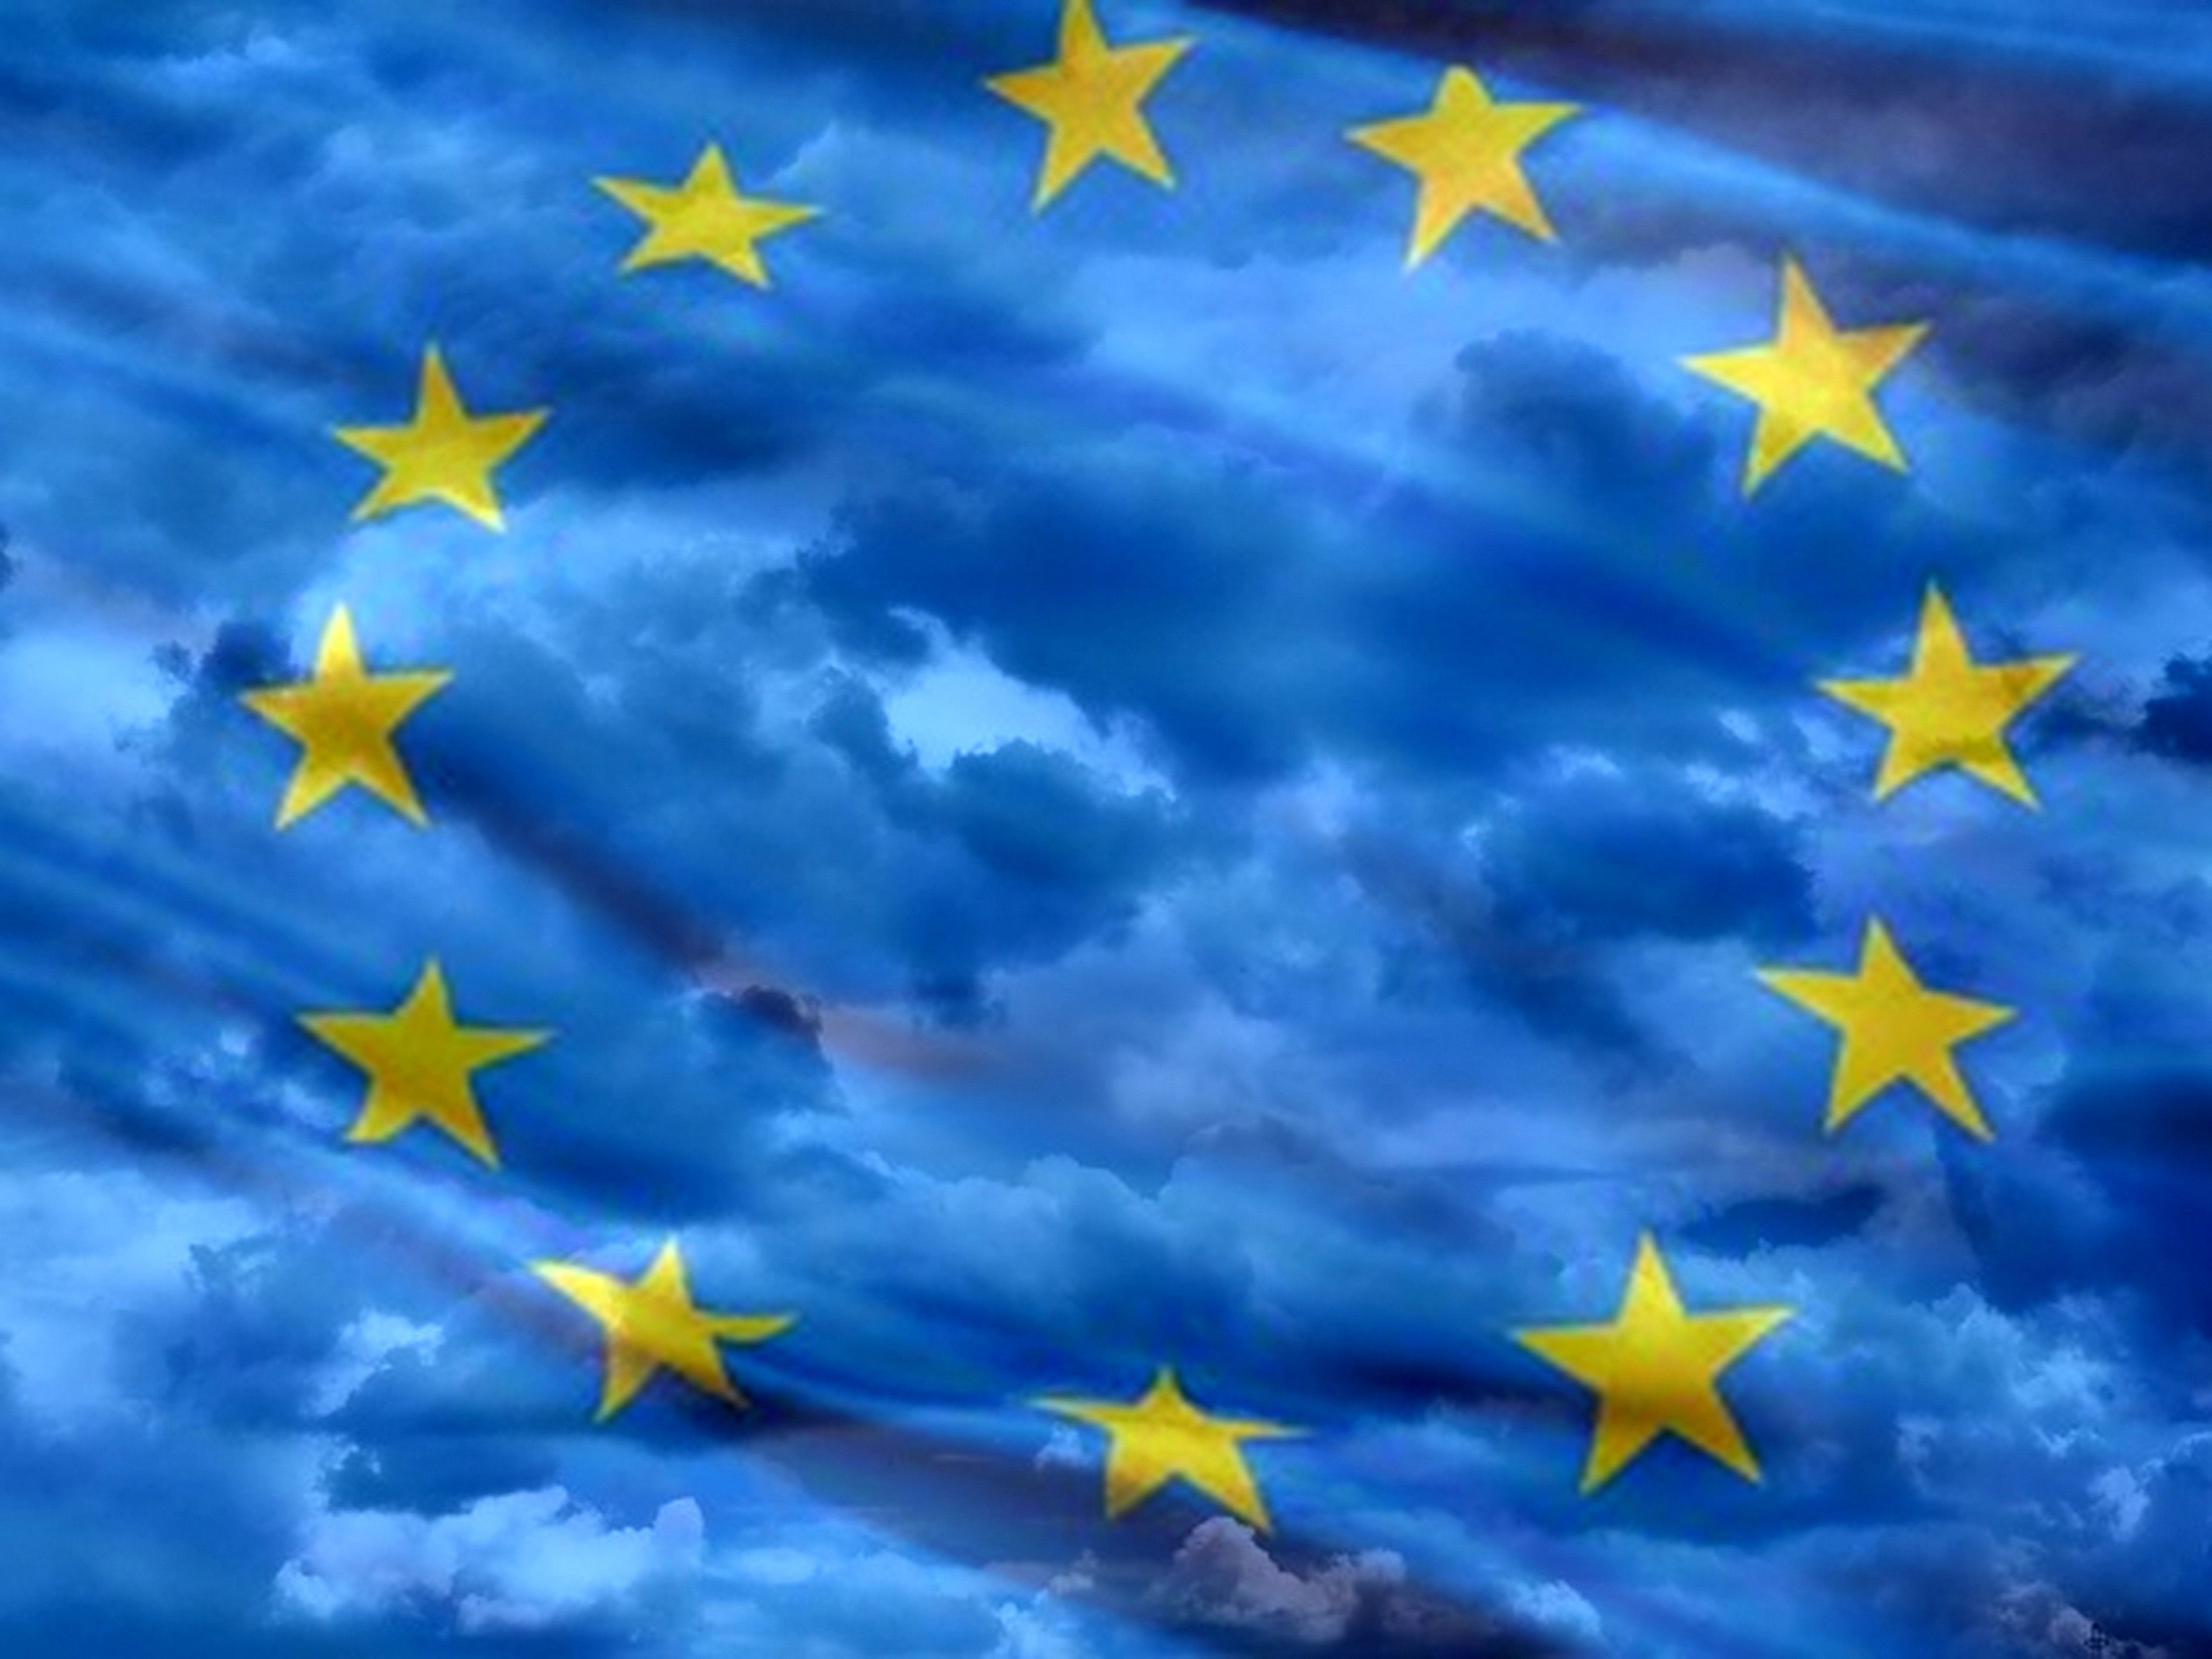 EU ePrivacy Directive Proposes Consent Requirement for Online Tracking, Marketing